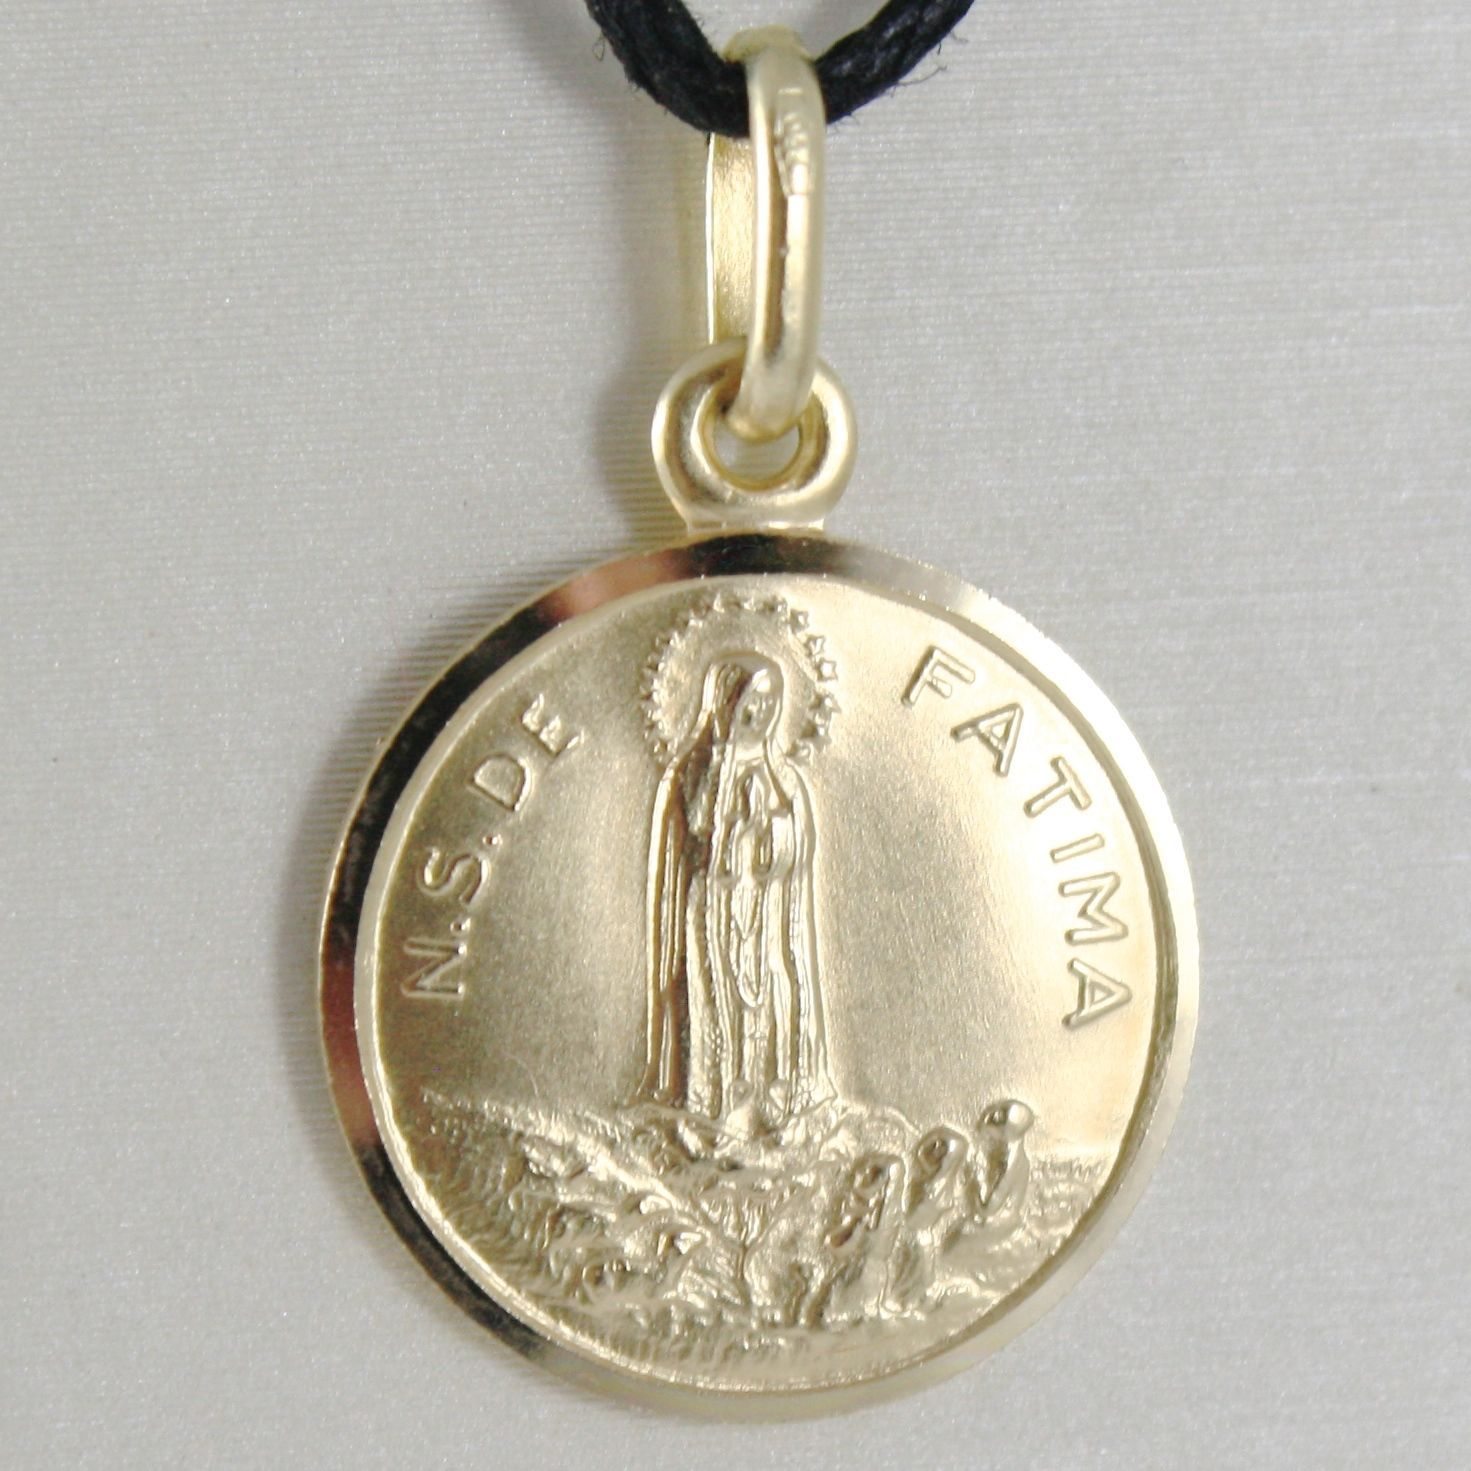 PENDANT MEDAL YELLOW GOLD 750 18K, MADONNA, NOSTRA SIGNORA BY FATIMA, 15 MM